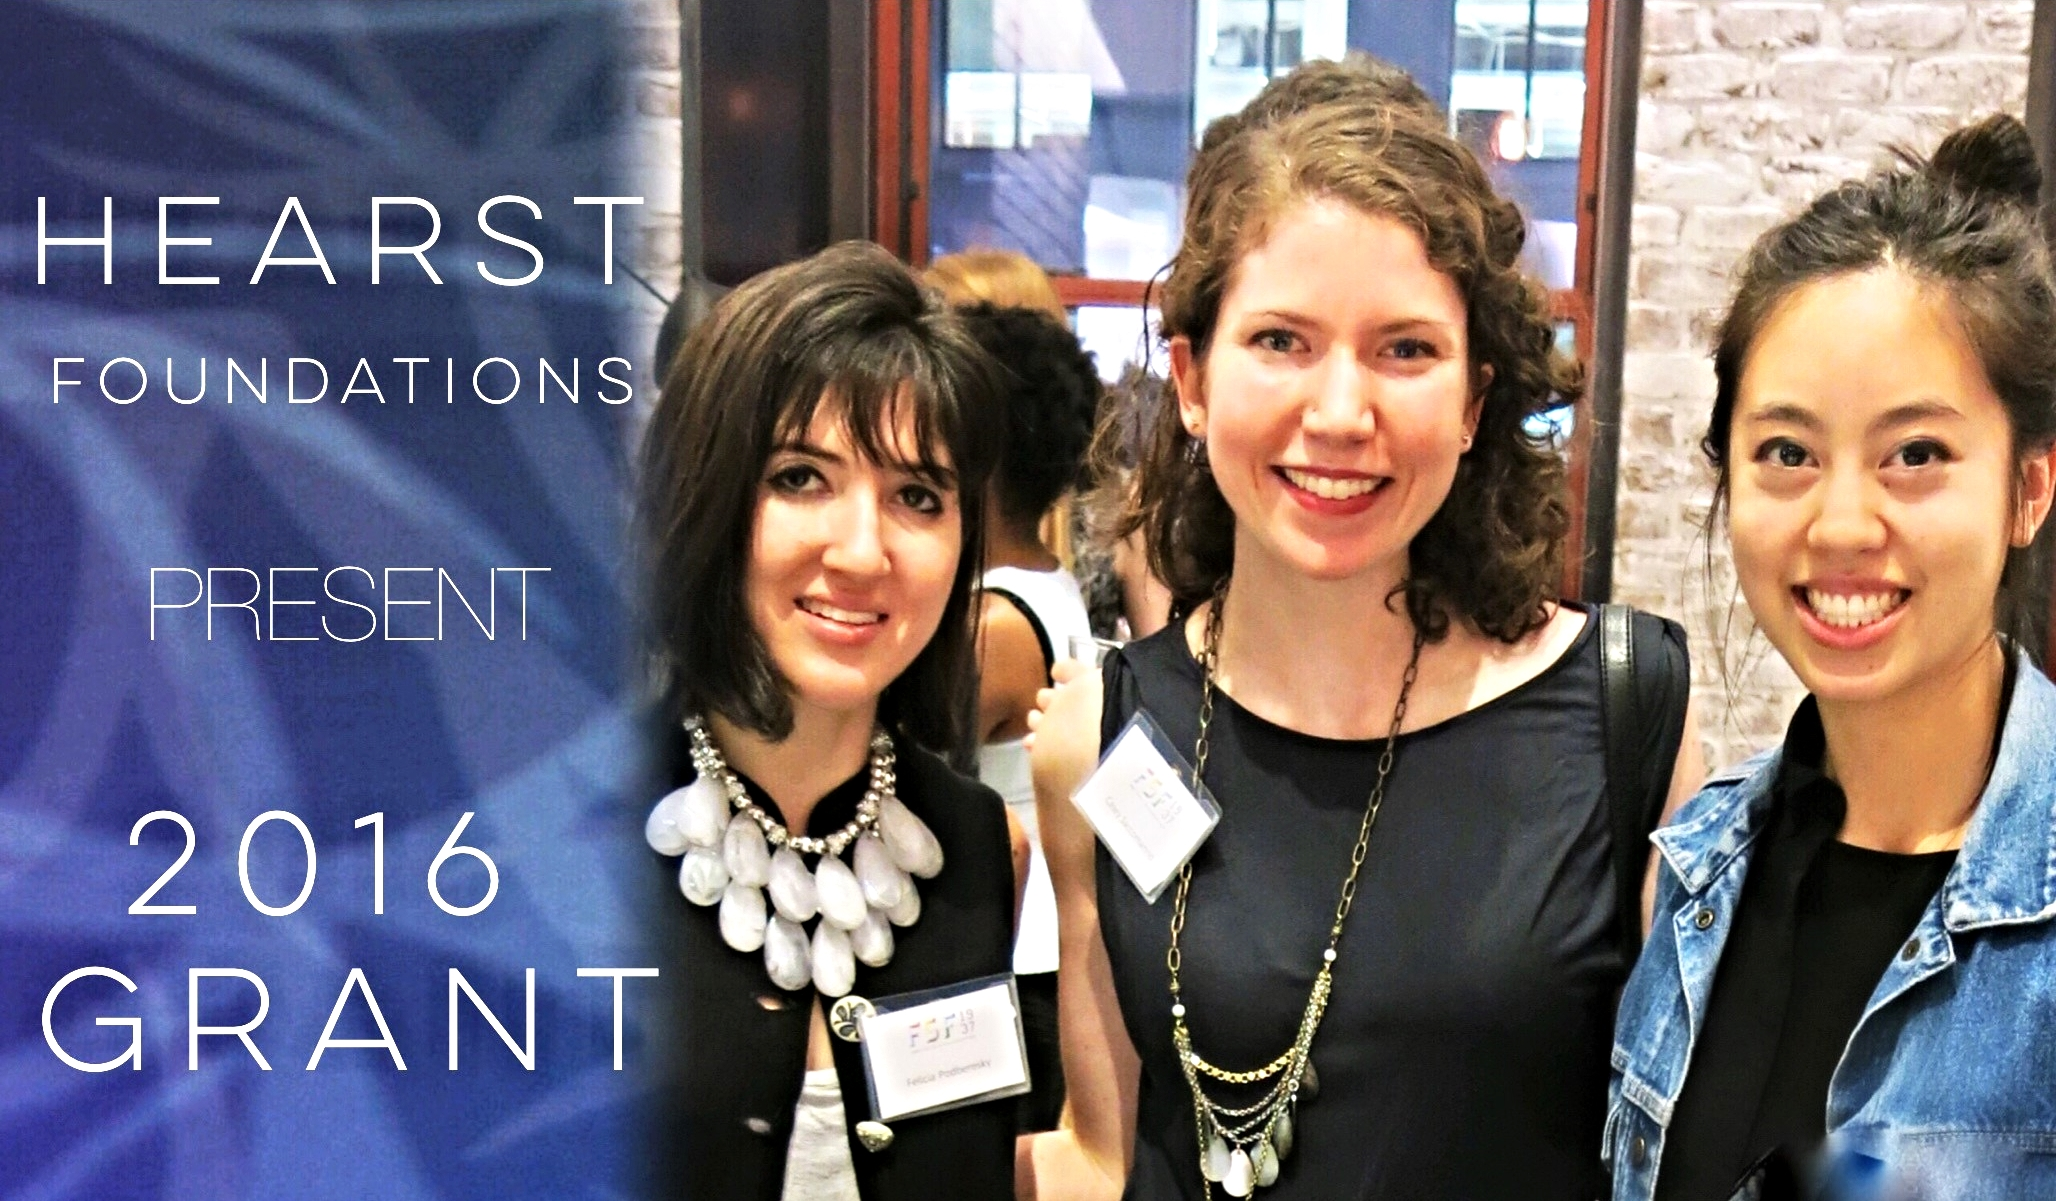 HEARST Awards YMA Fashion Scholarship Fund With Grant To Create The Hearst Winter and Summer Institutes.